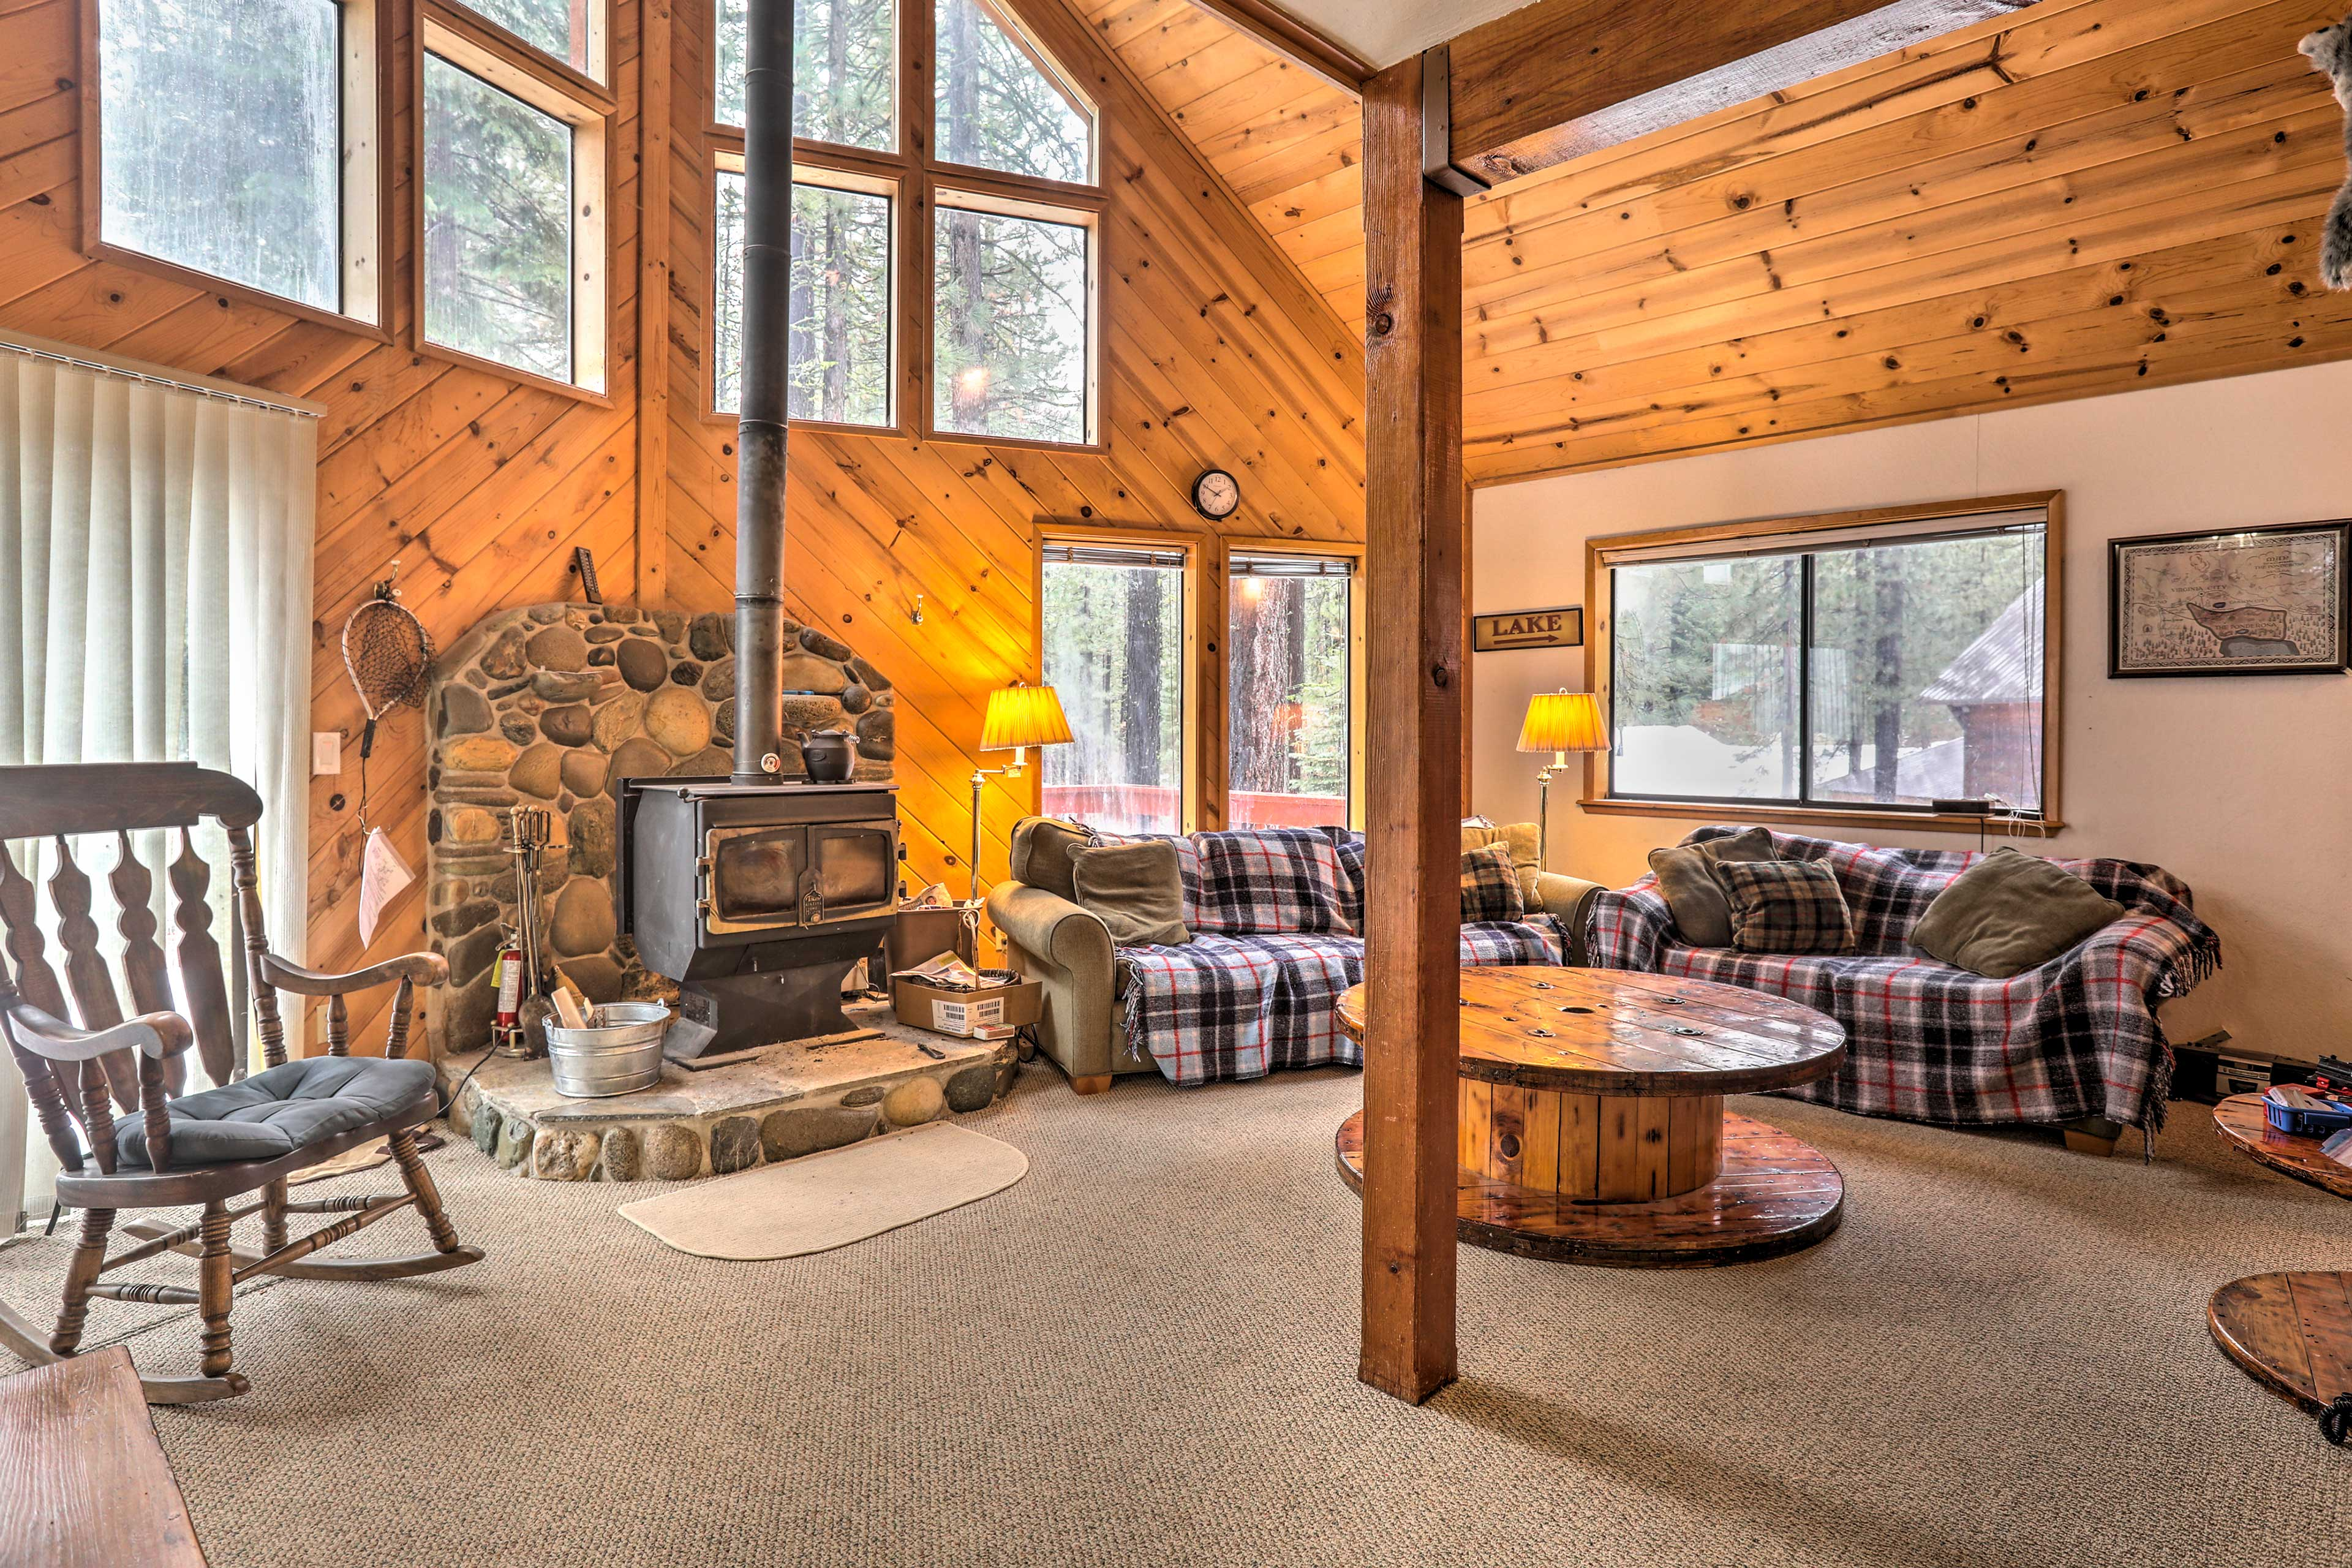 This vacation rental cabin is the perfect destination for Tahoe adventures.